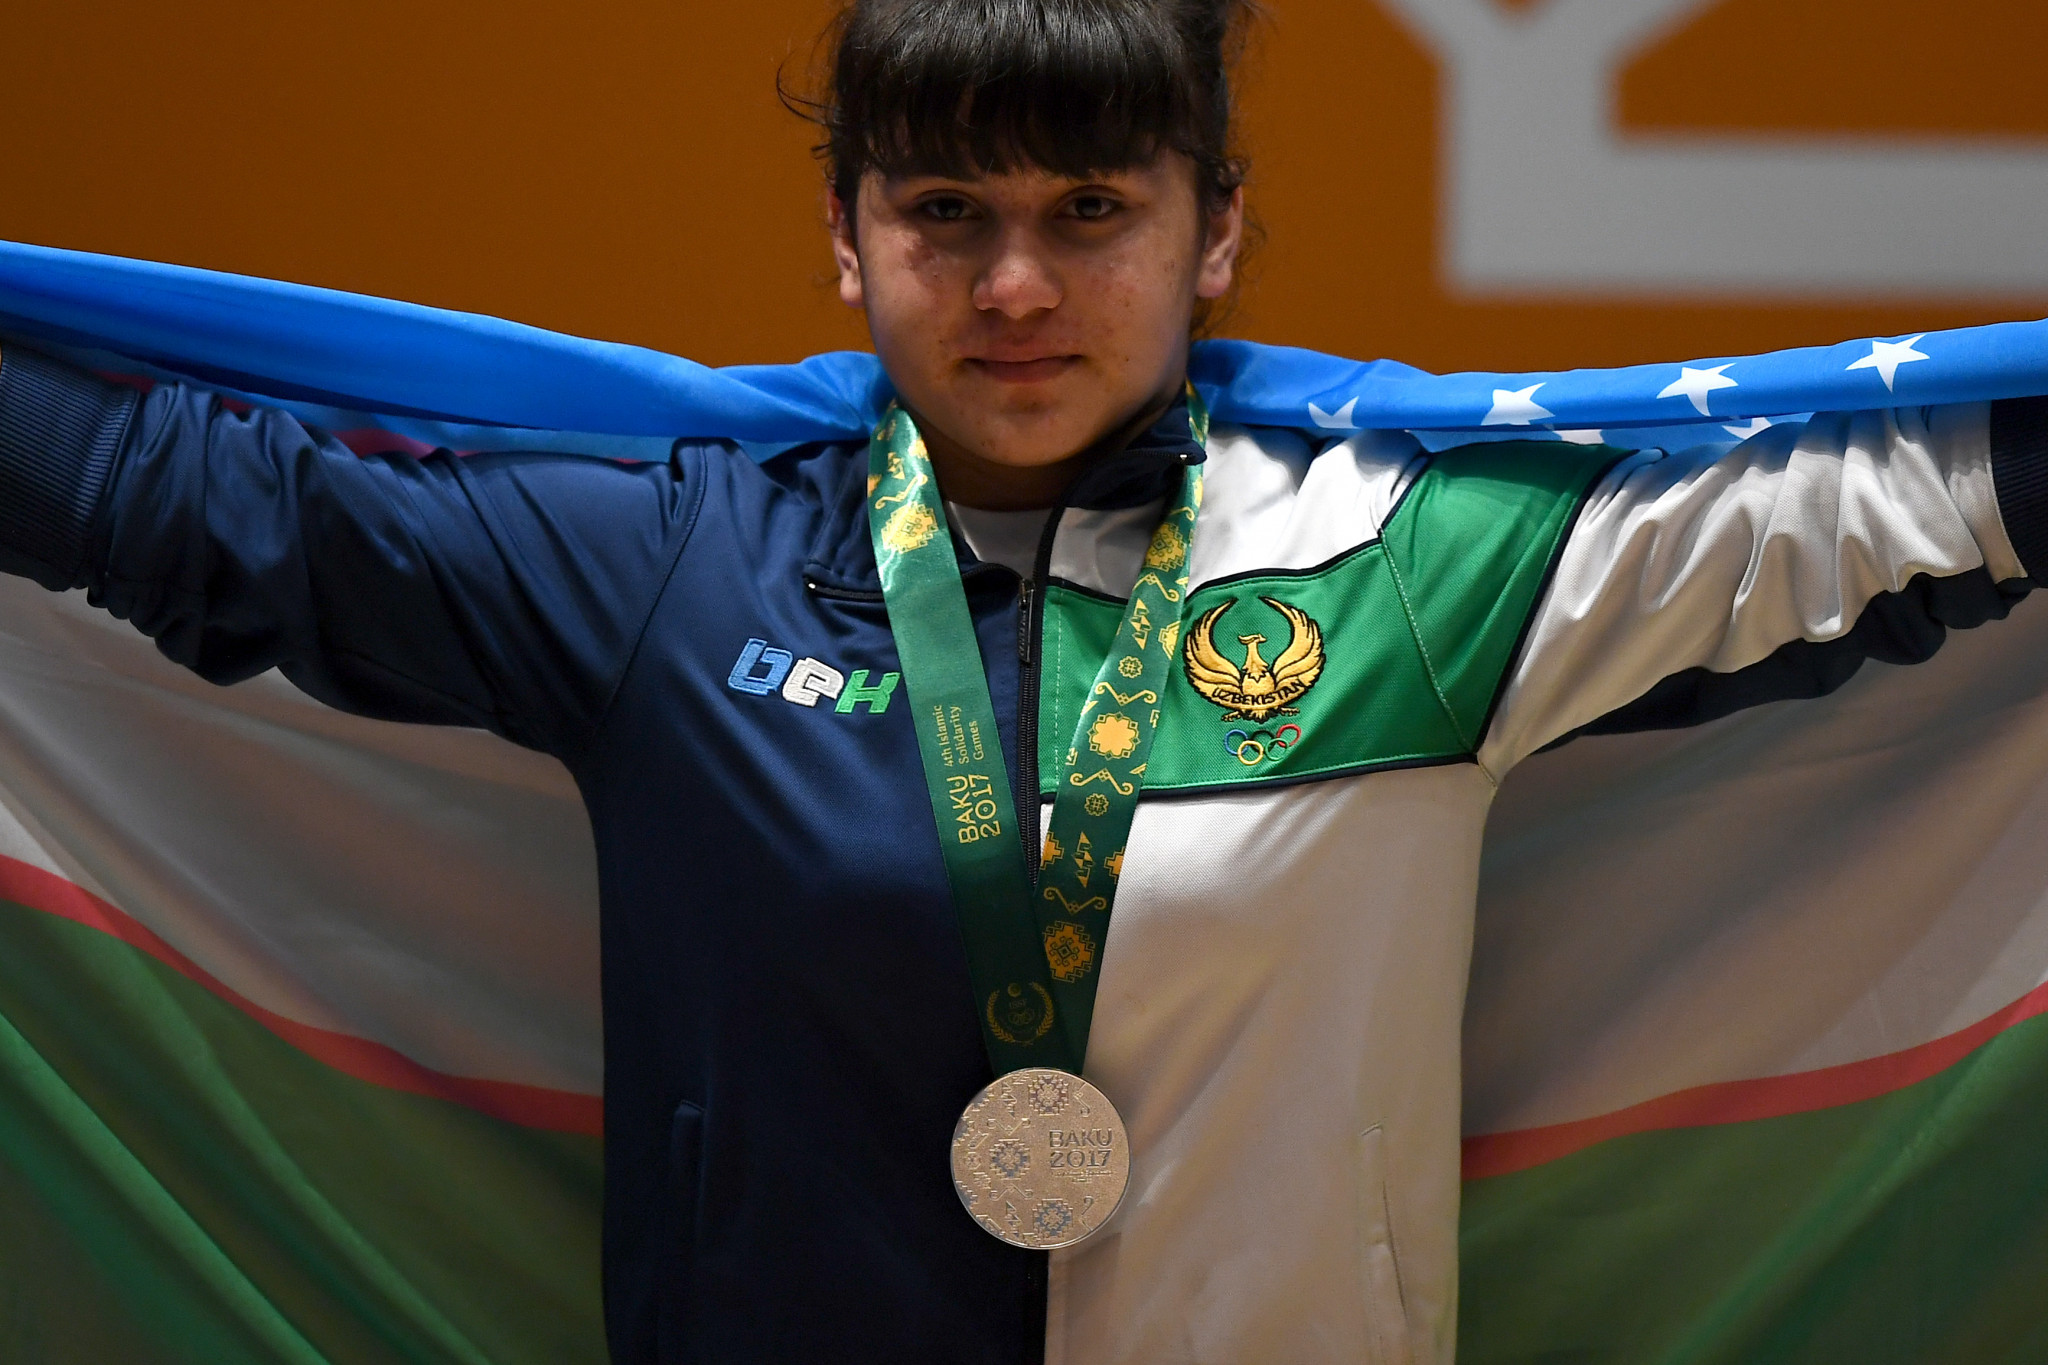 Buenos Aires 2018 gold medallist Fayzullaeva headlines field for 2019 IWF Youth World Championships in Las Vegas